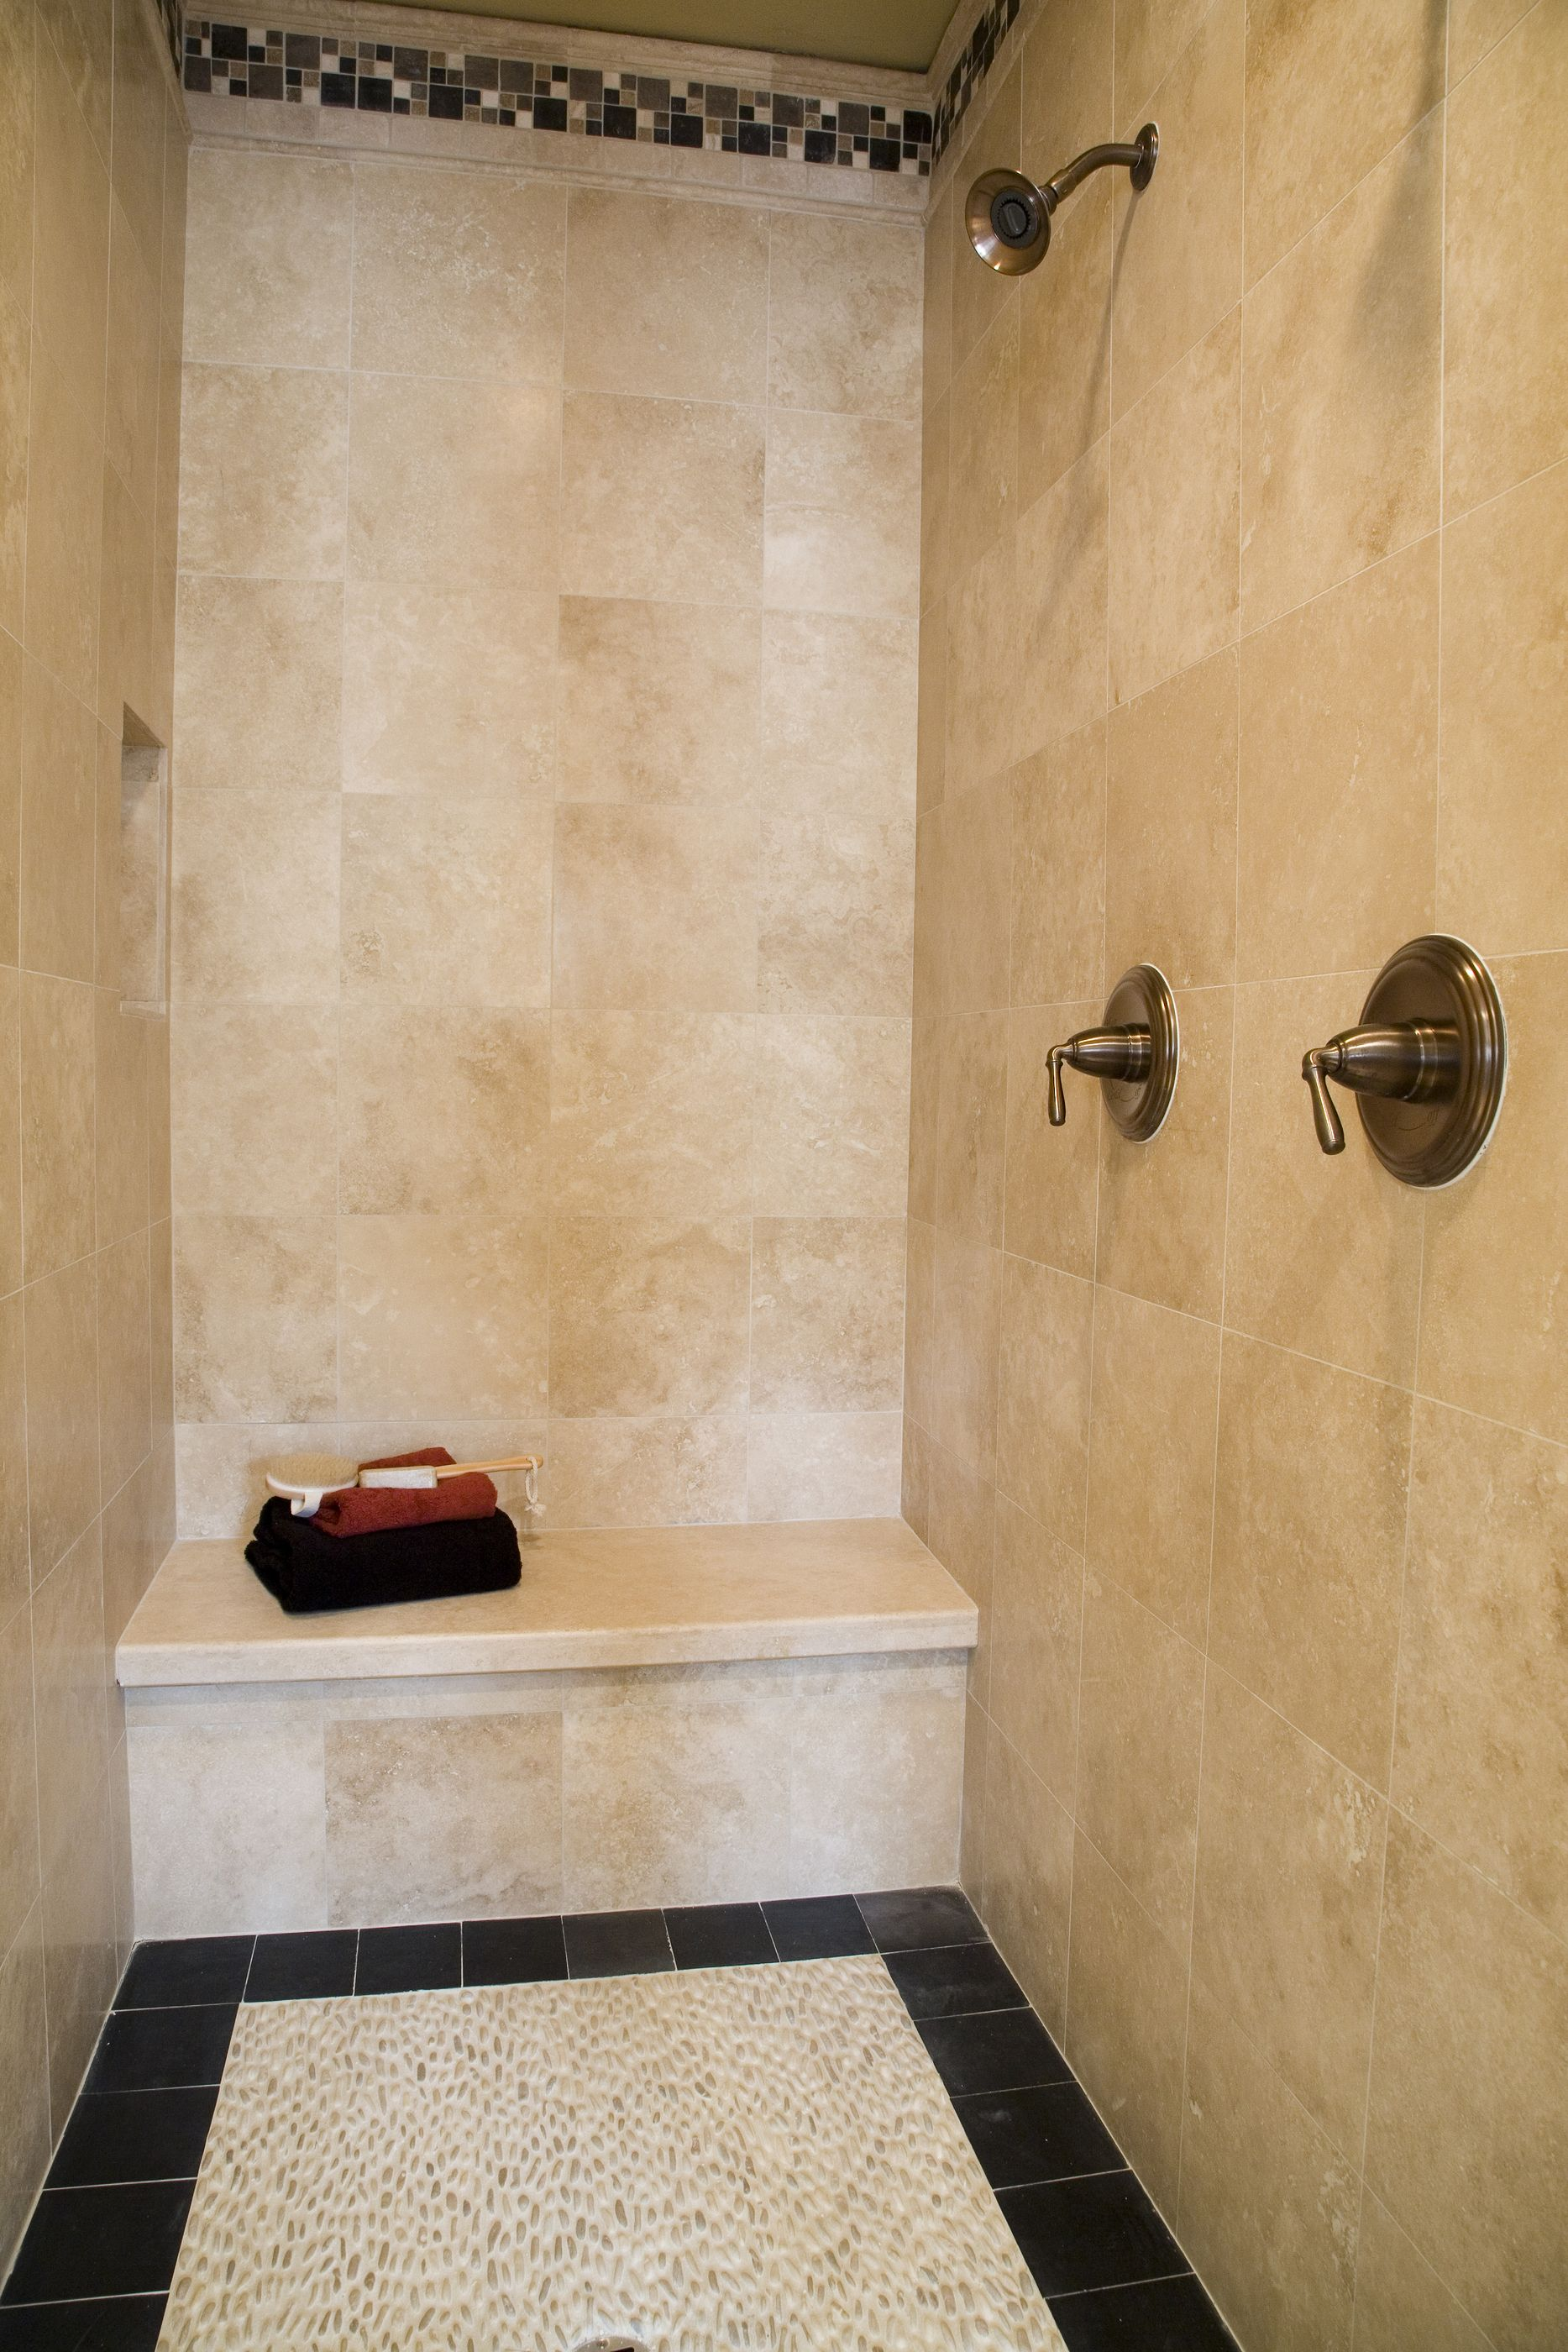 Showers Country Doorless Walk In Shower Designs With Seat And Border Wall Tile Decor Shower Stalls For Smal Shower Tile Doorless Shower Showers Without Doors